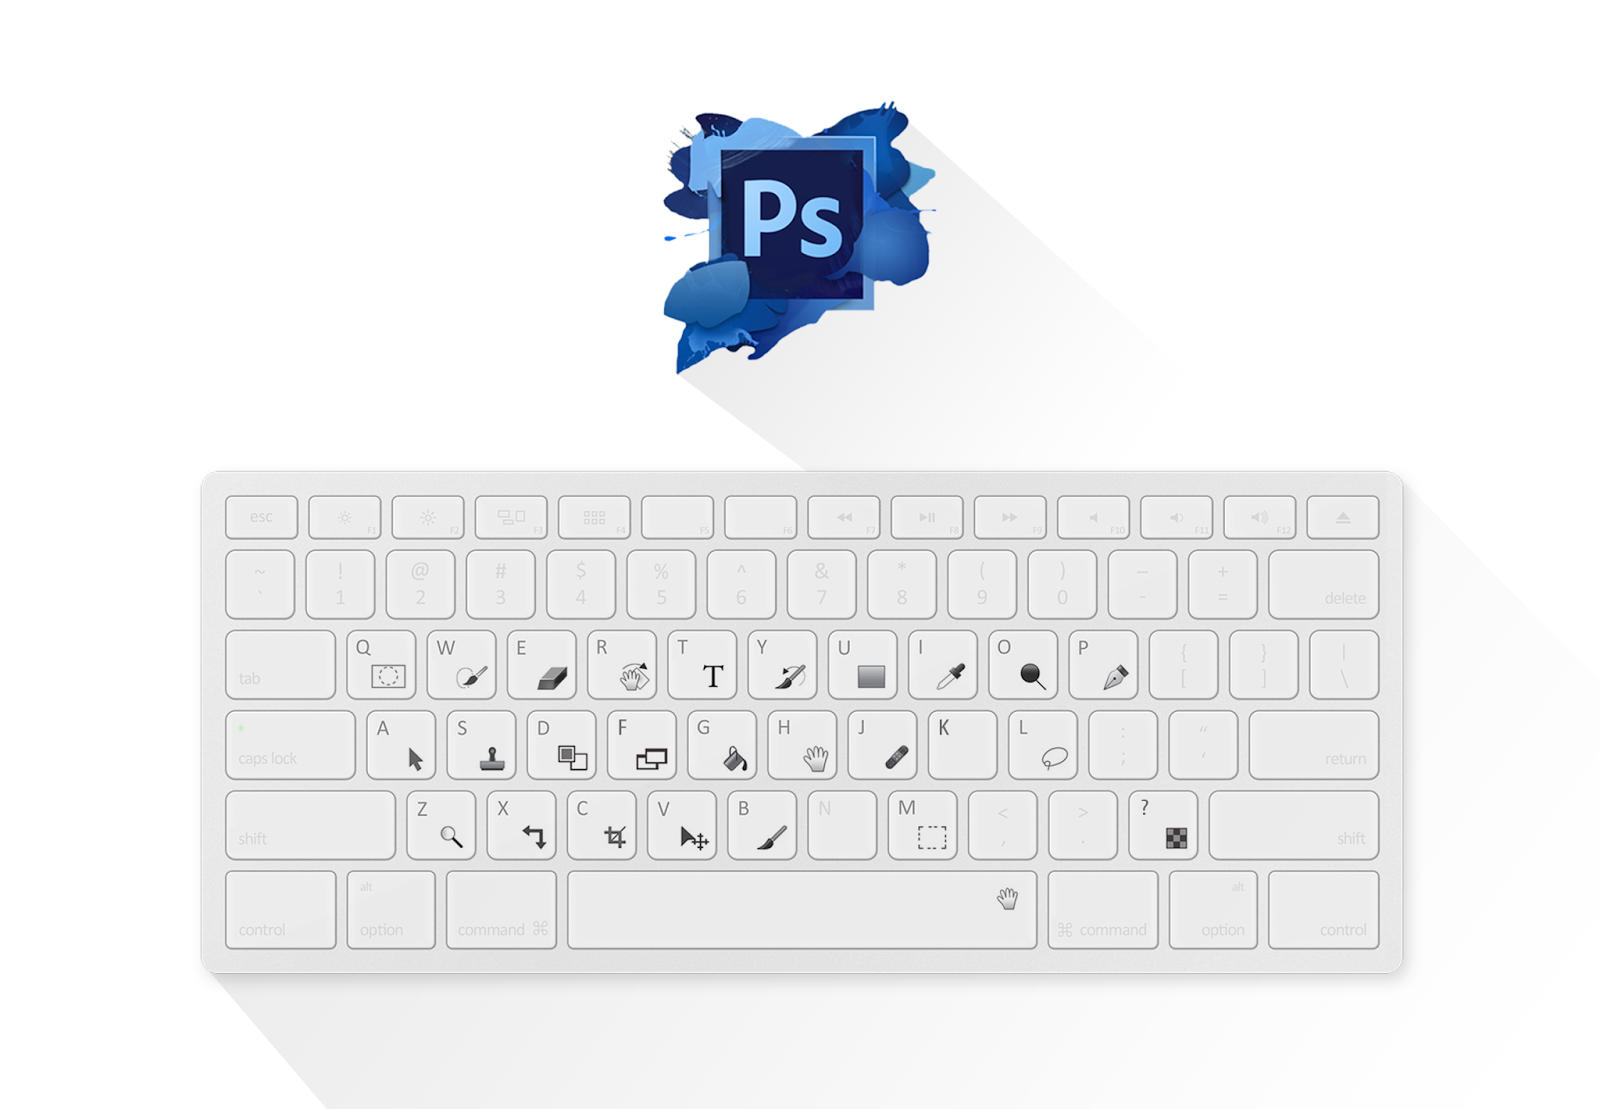 Photoshop Shortcut Key